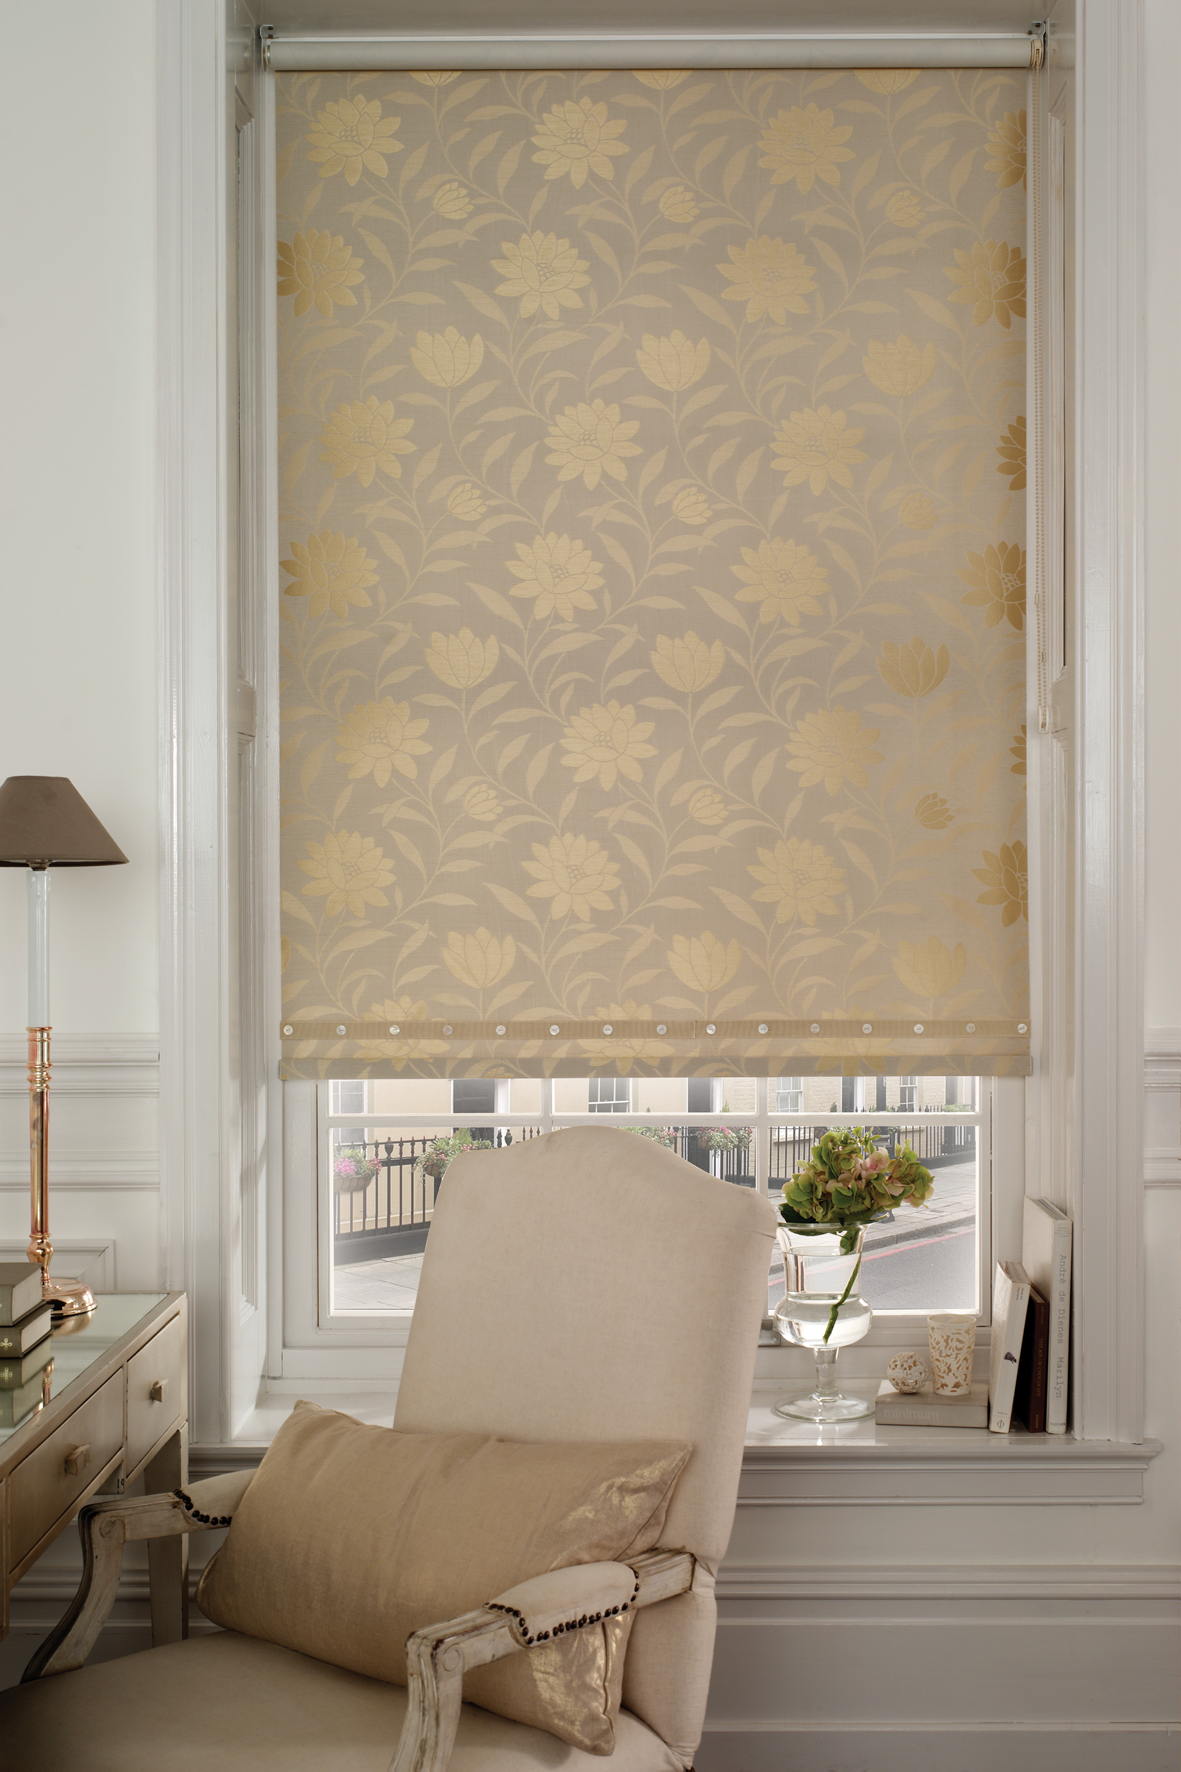 Products rollers in vogue blinds - At All About Blinds We Stock One Of The Largest Ranges Of Roller Blinds In Wellington With Sunscreen Block Outs Vision Day Night Blinds Along With